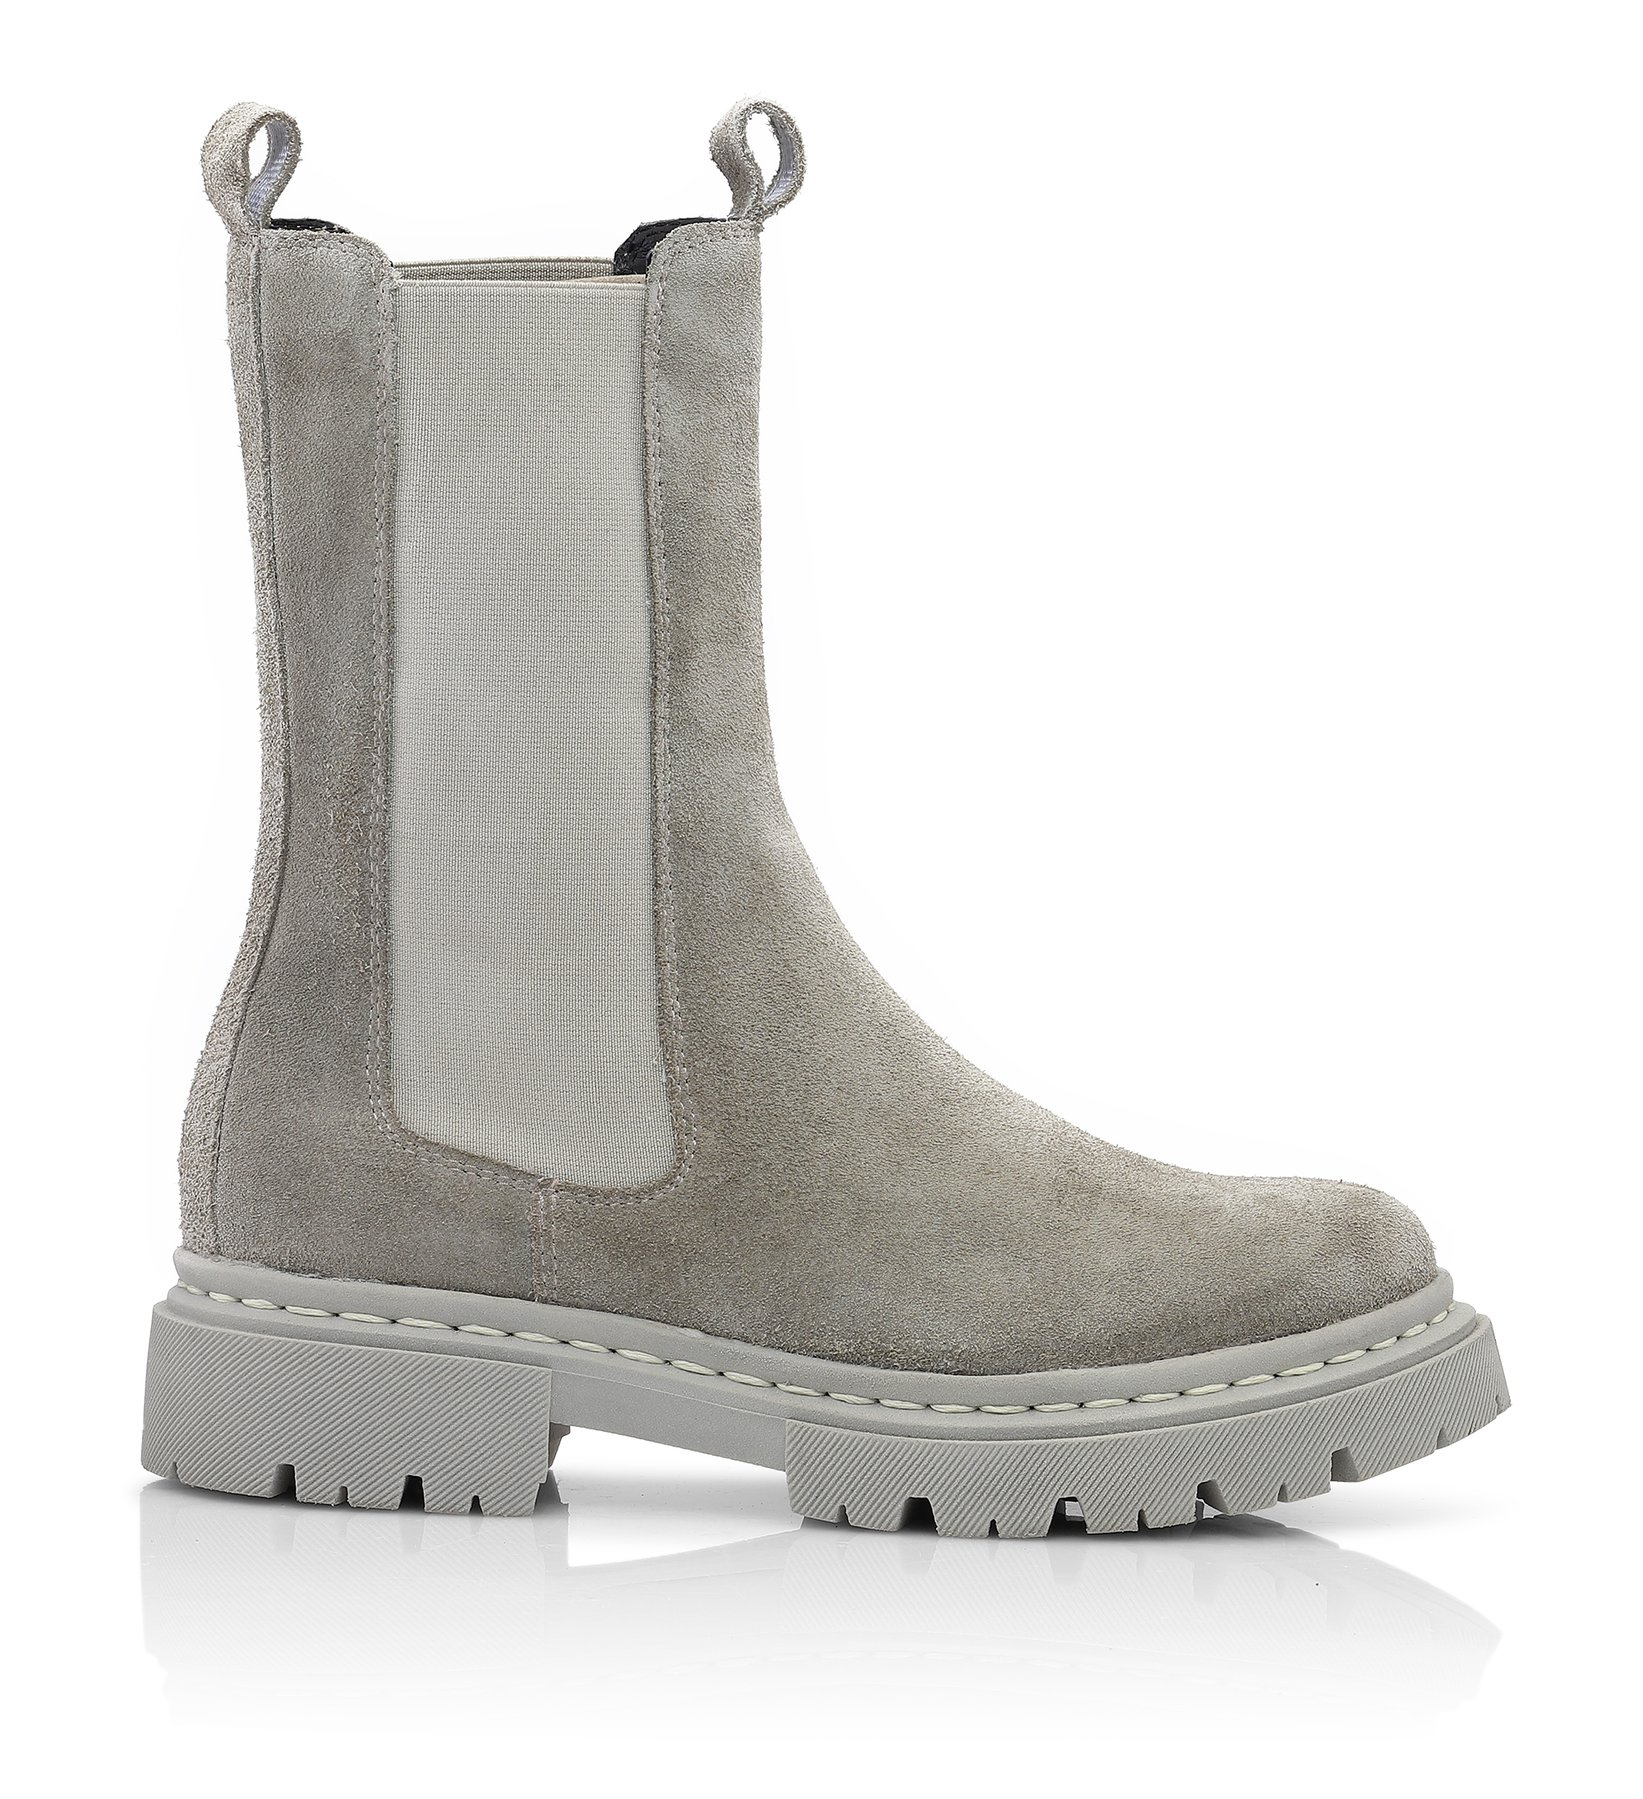 "Boots ""Dusty grey"" from Shoe biz Copenhagen"